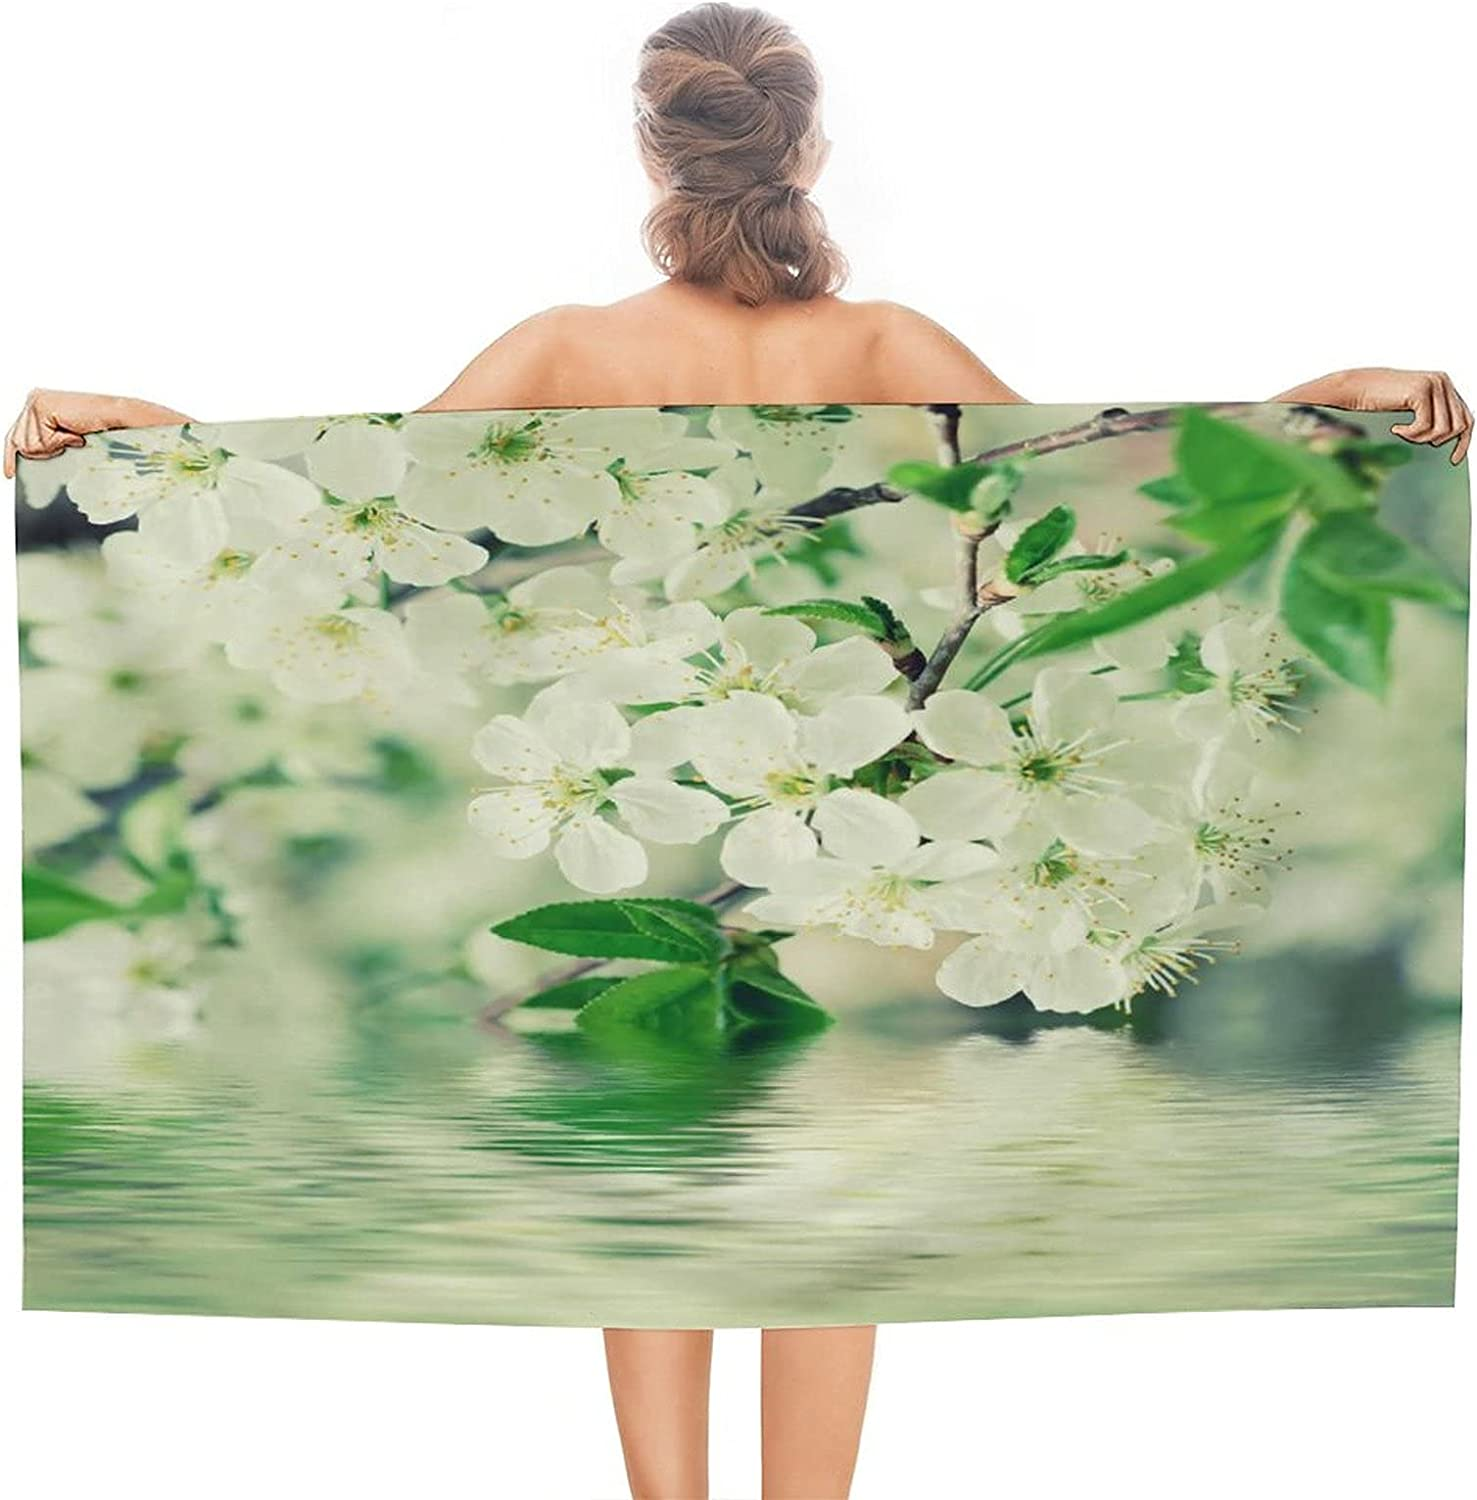 Blossoming 70% OFF Outlet of Cherry Flowers Over item handling in Beach Soft Towel Circular Spring